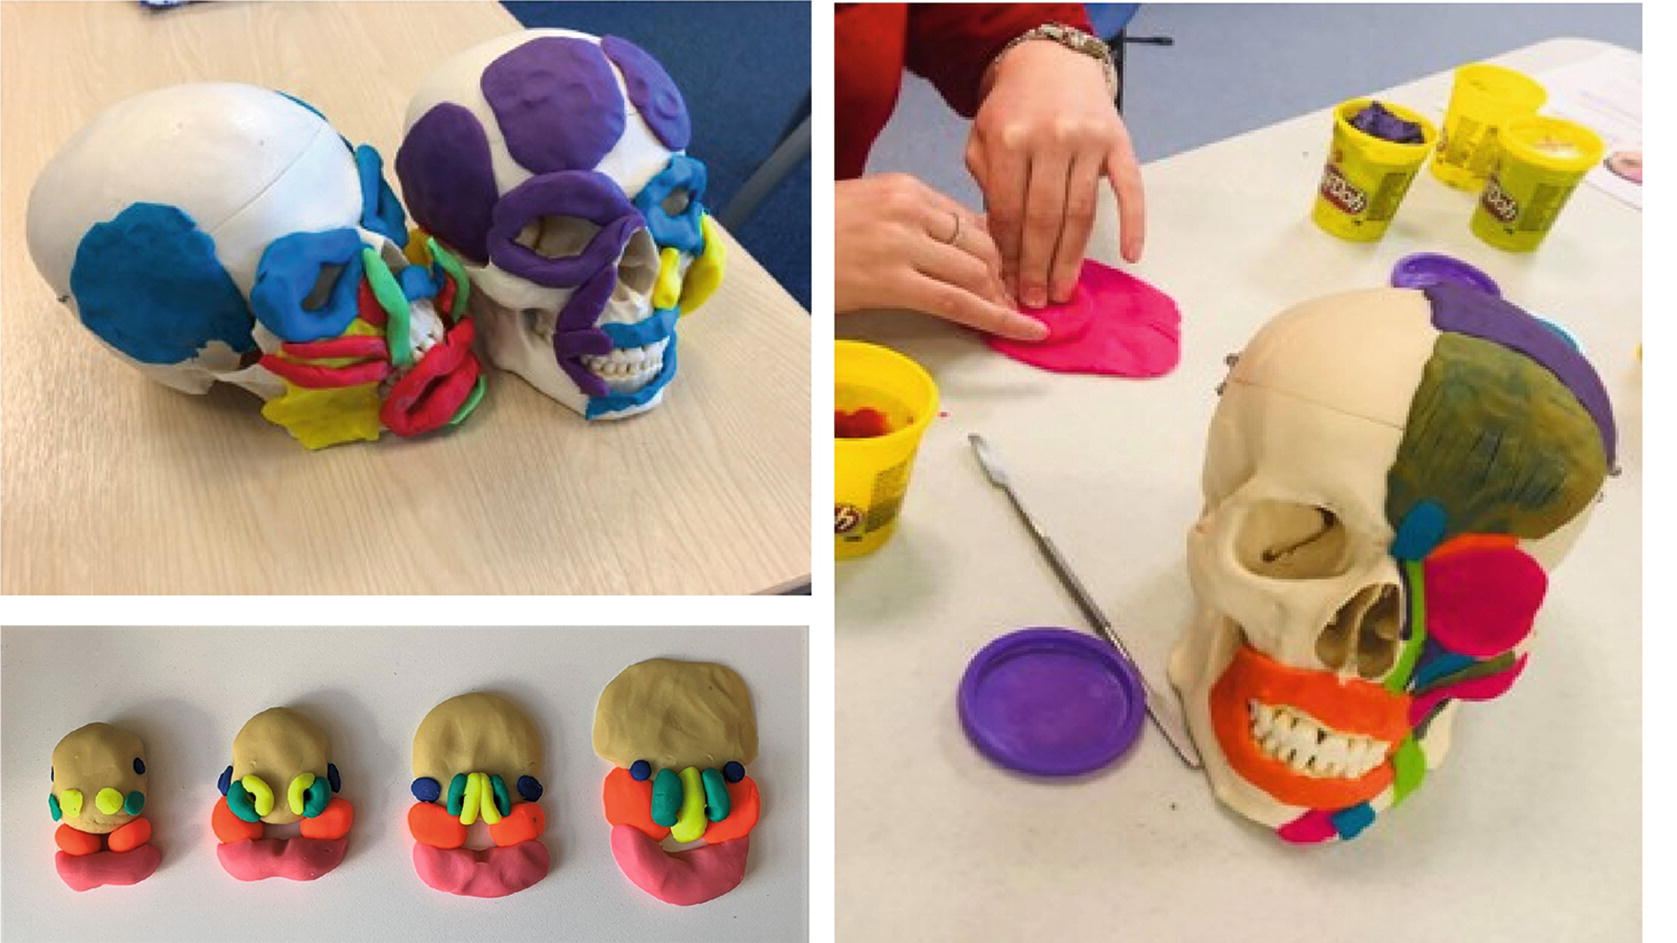 Body Painting Plus Art Based Activities To Improve Visualisation In Clinical Education Settings Springerlink